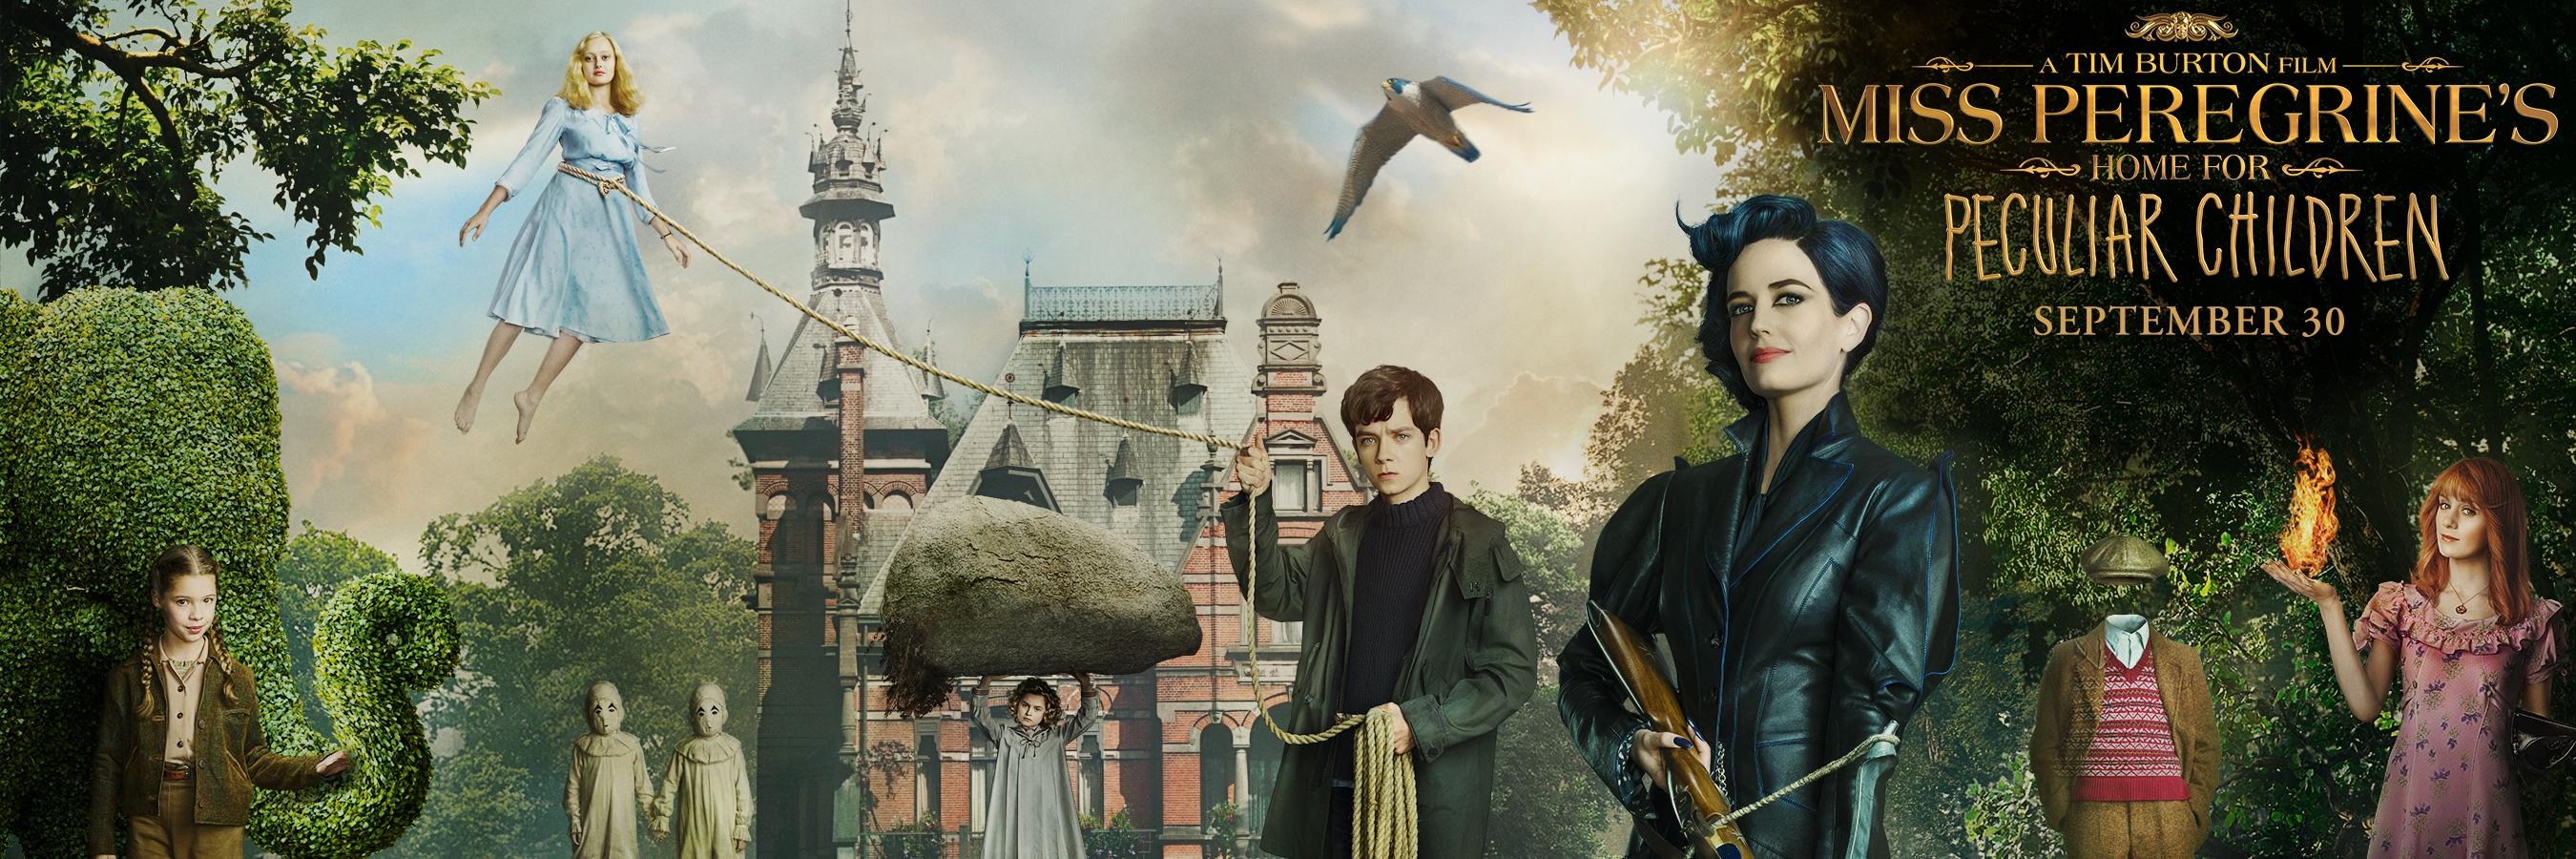 Miss peregrine s home for peculiar children hd wallpapers for Wallpaper 2016 home